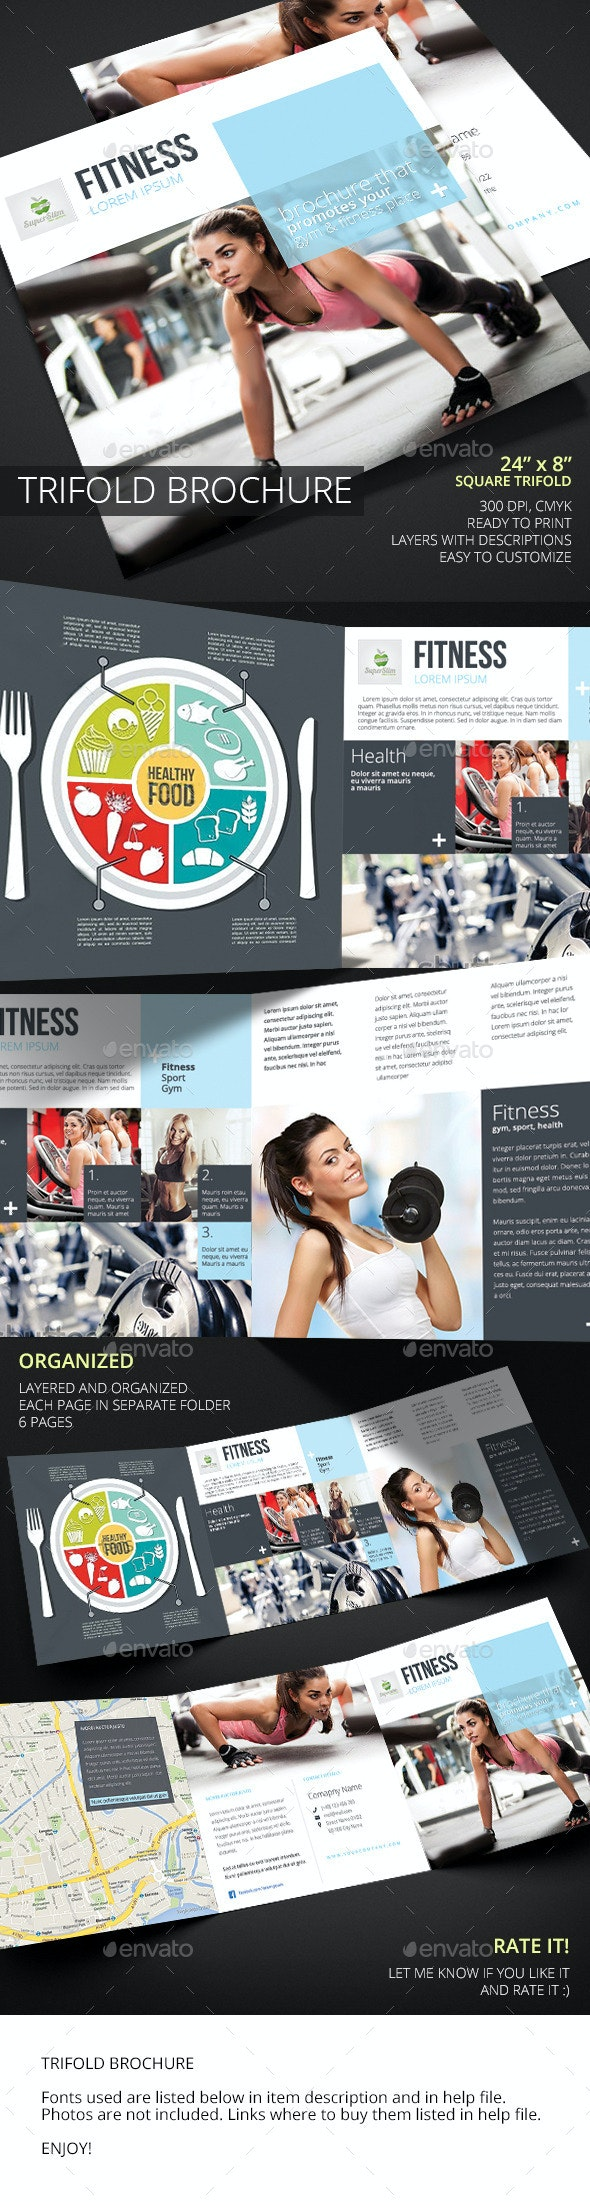 Fitness Square Trifold Brochure - Informational Brochures